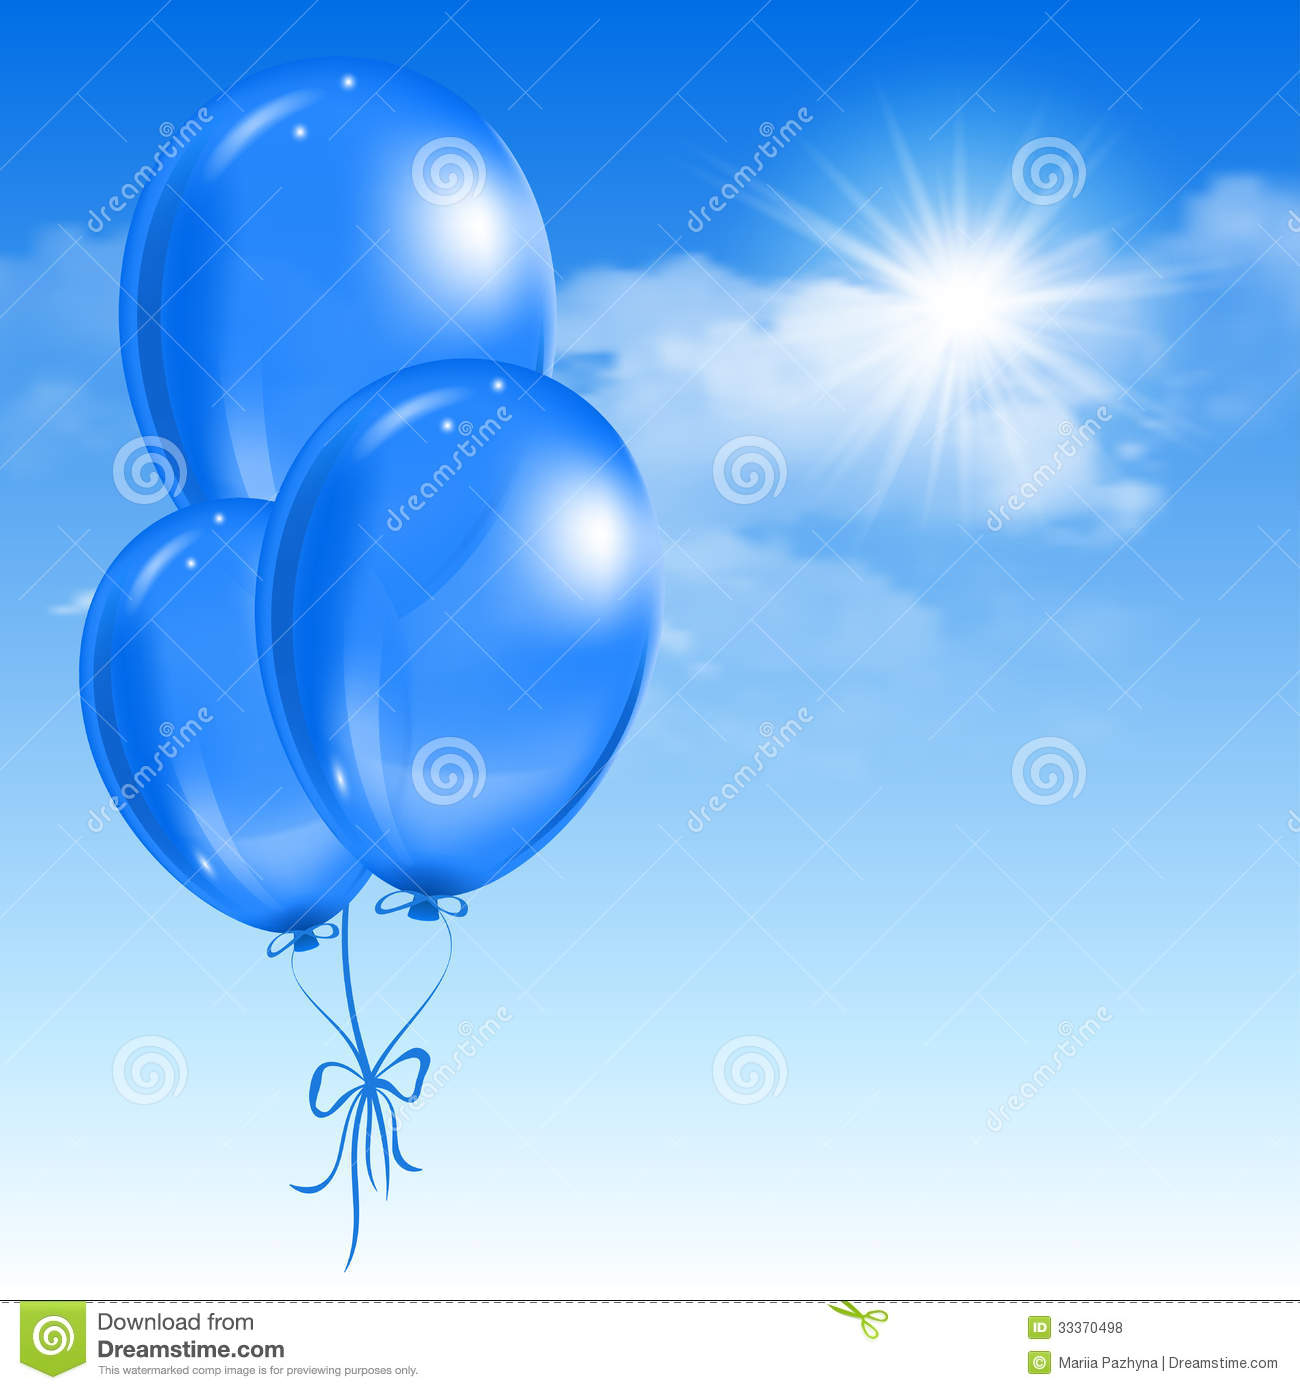 Balloons in the sky royalty free stock photos image for Silver cloud balloons